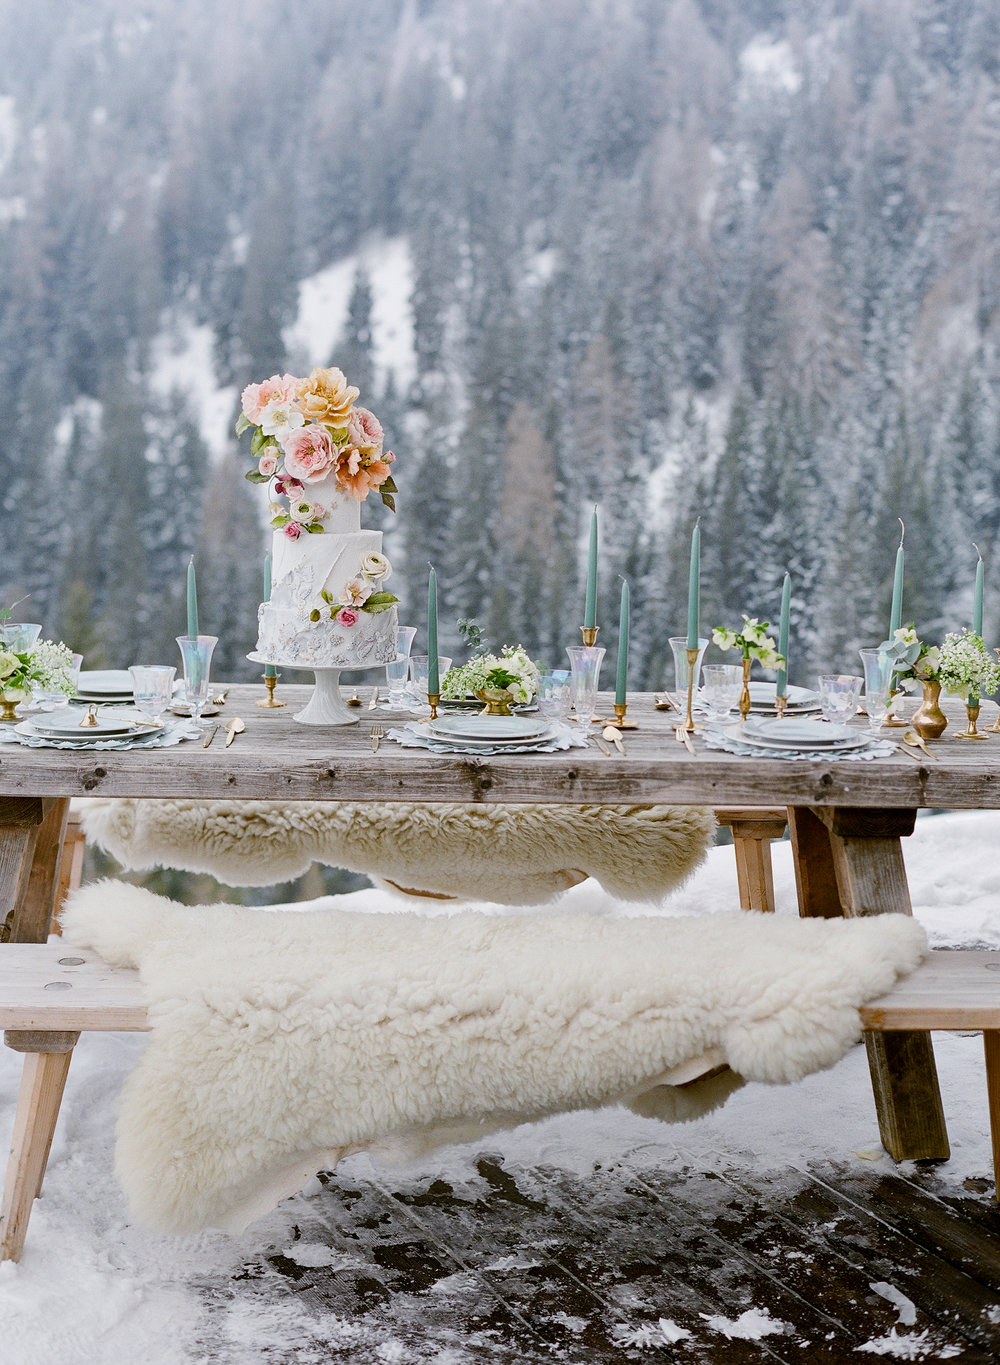 Table setting at chalet Bischoferalm / Jose Villa